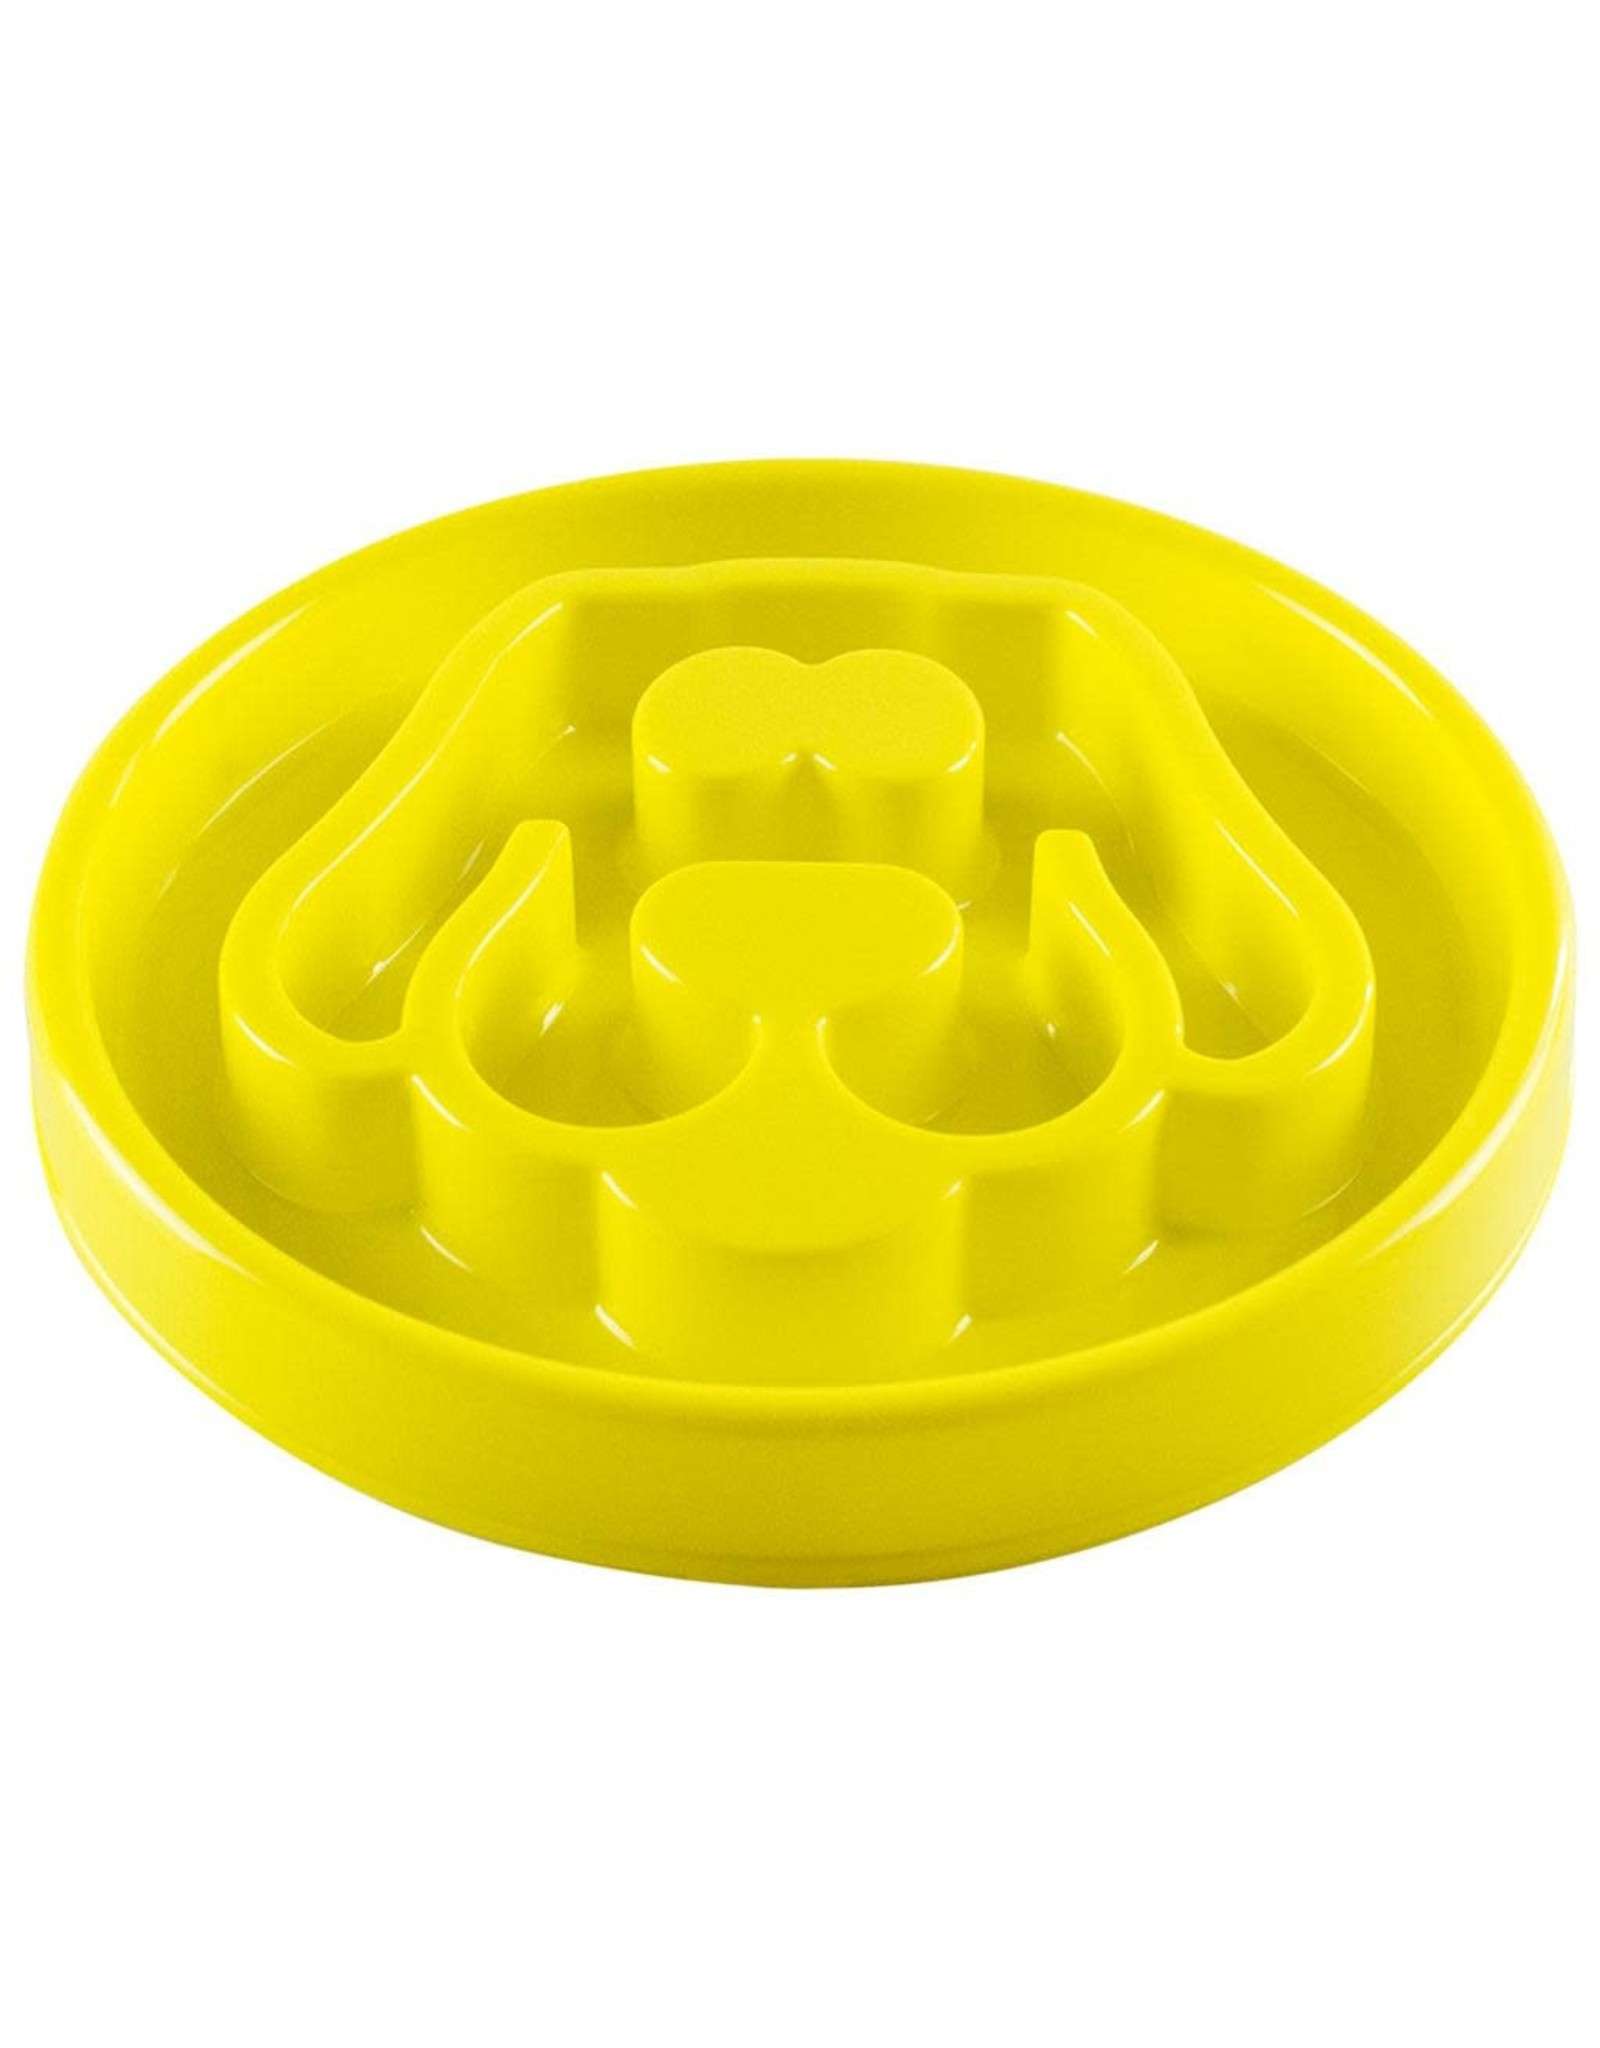 Be One Breed Slow Feeder Bowl - Yellow